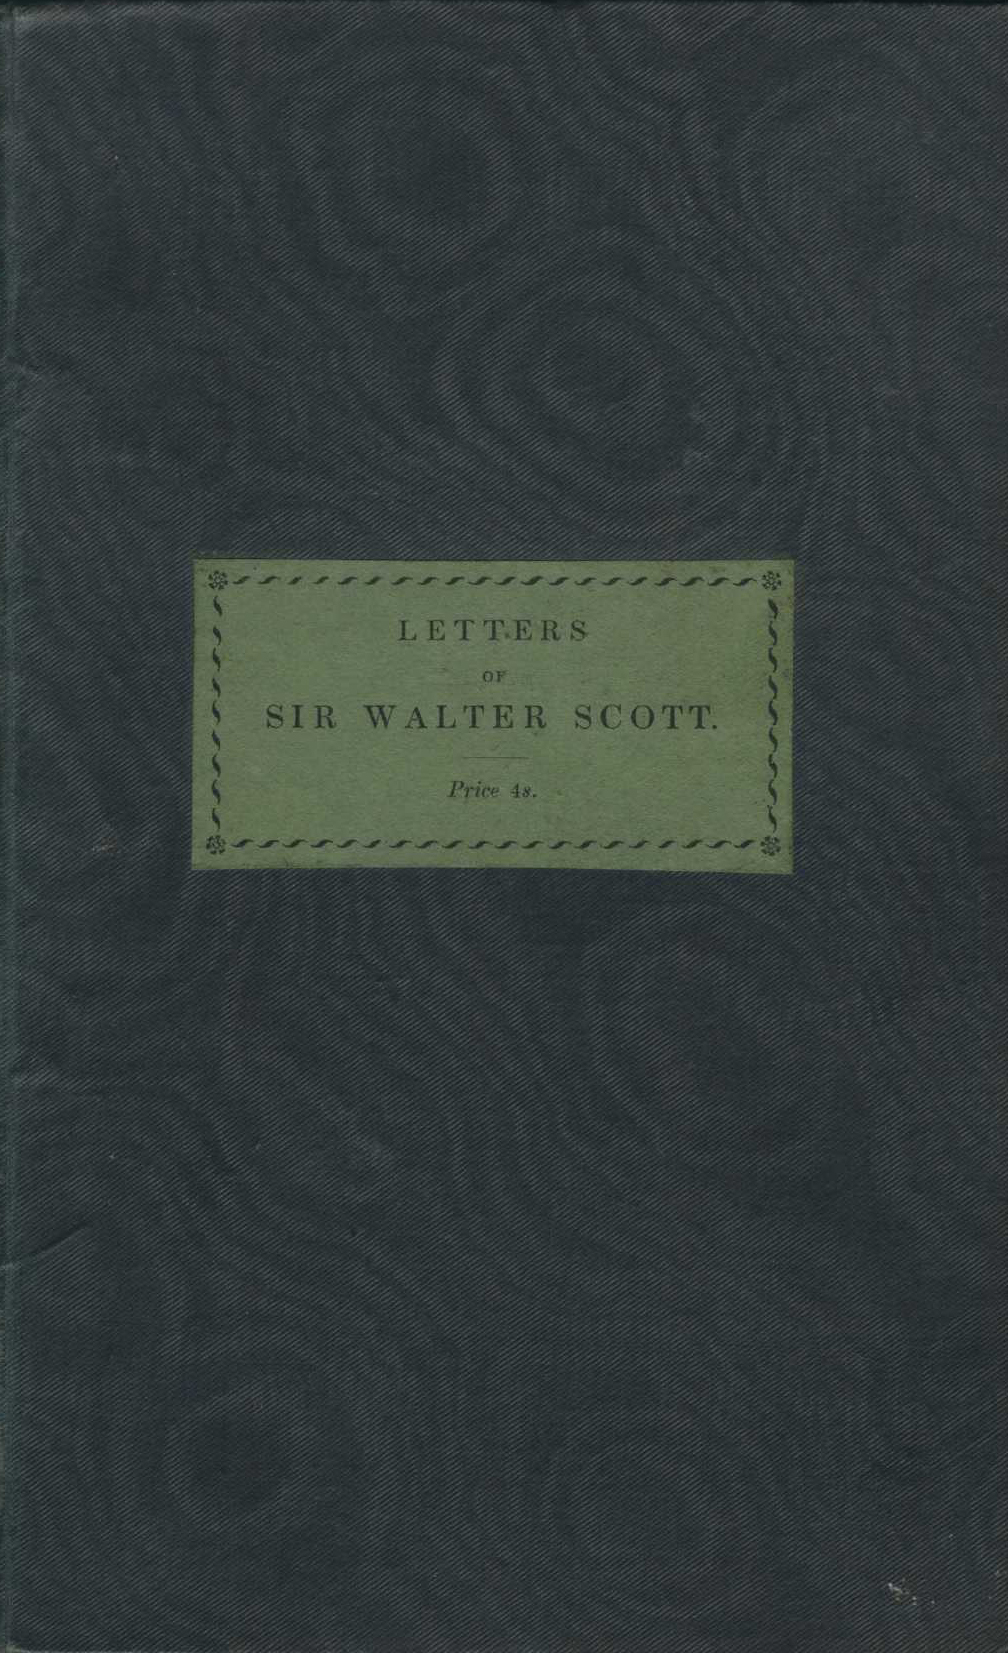 Sir Walter Scott. Letters of Sir Walter Scott. London: J.B. Nichols and Son, 1832.